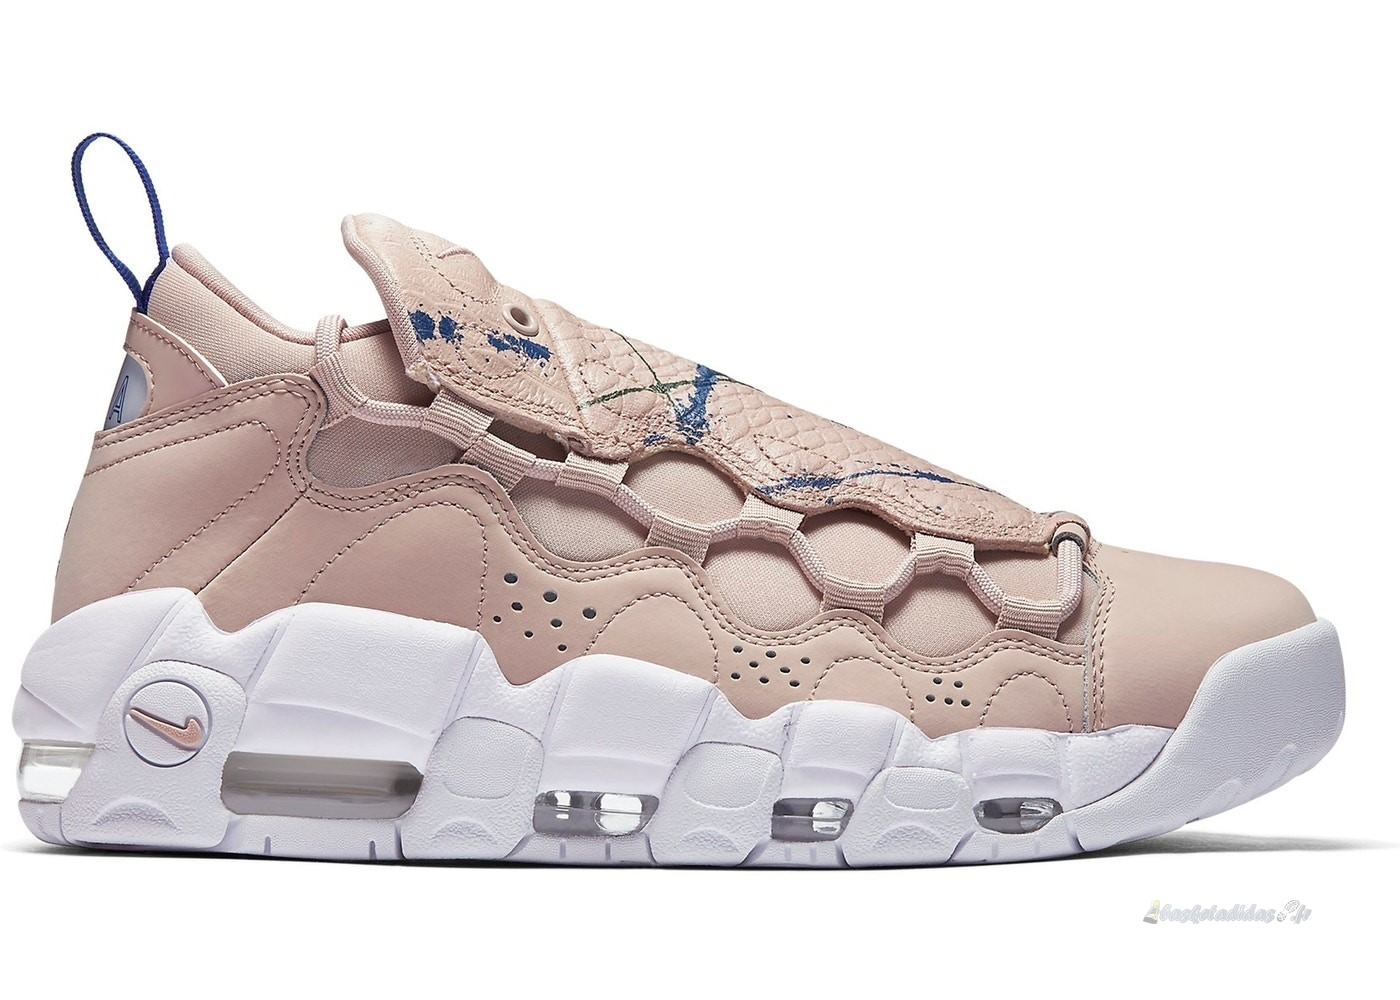 "Chaussure de Basket Air More Money Femme ""Particle Beige"" Beige (ao1749-200)"